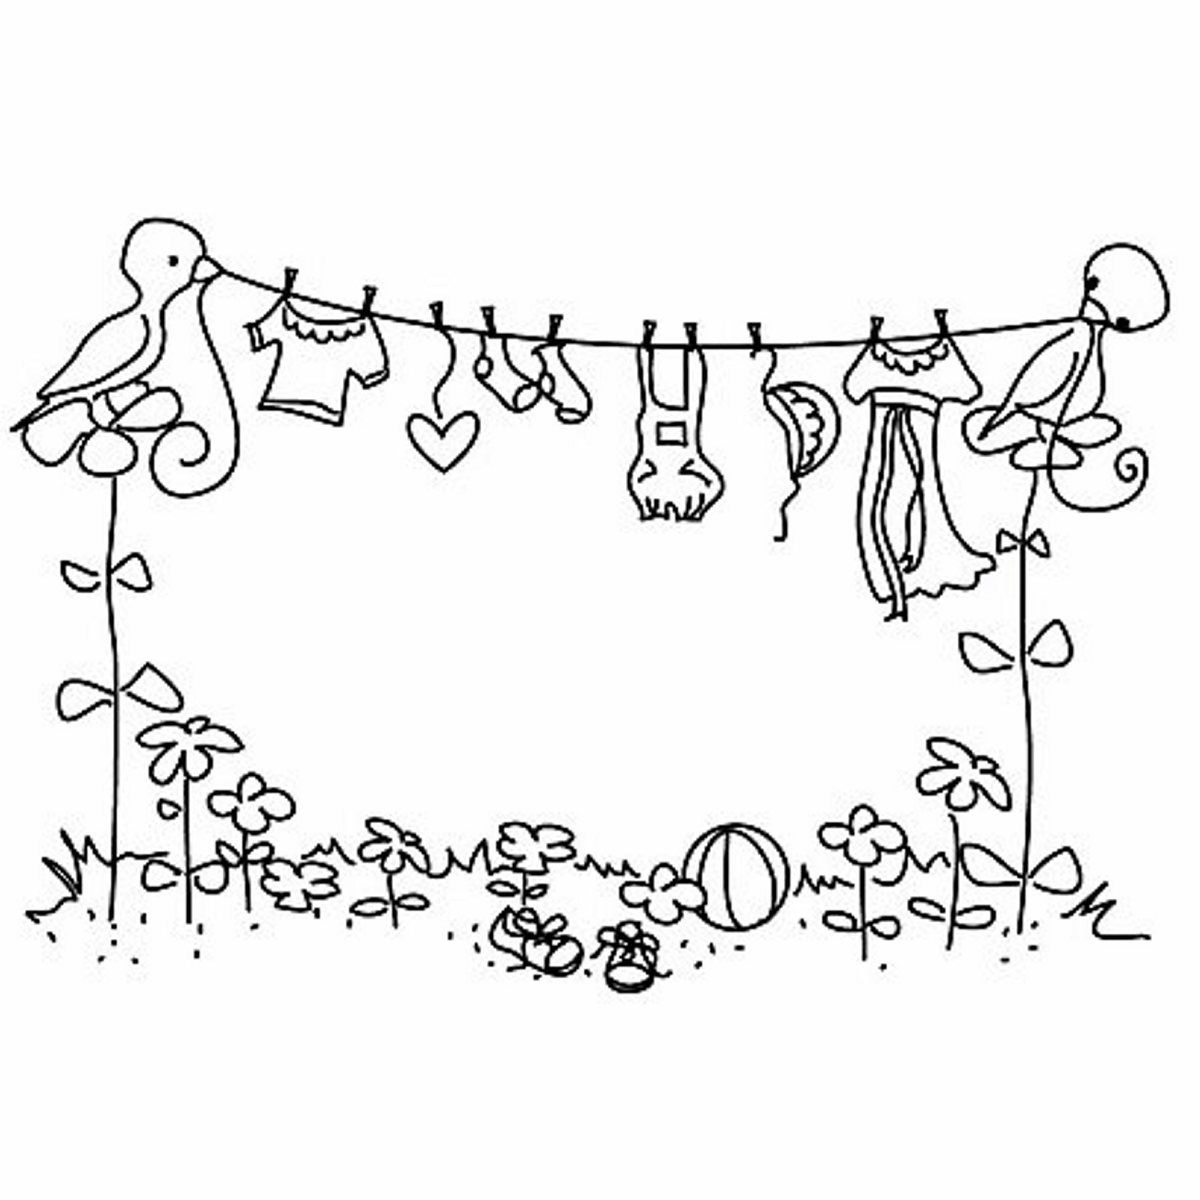 Bird clothesline craft ideas pinterest bird embroidery and embroidery applique bankloansurffo Choice Image